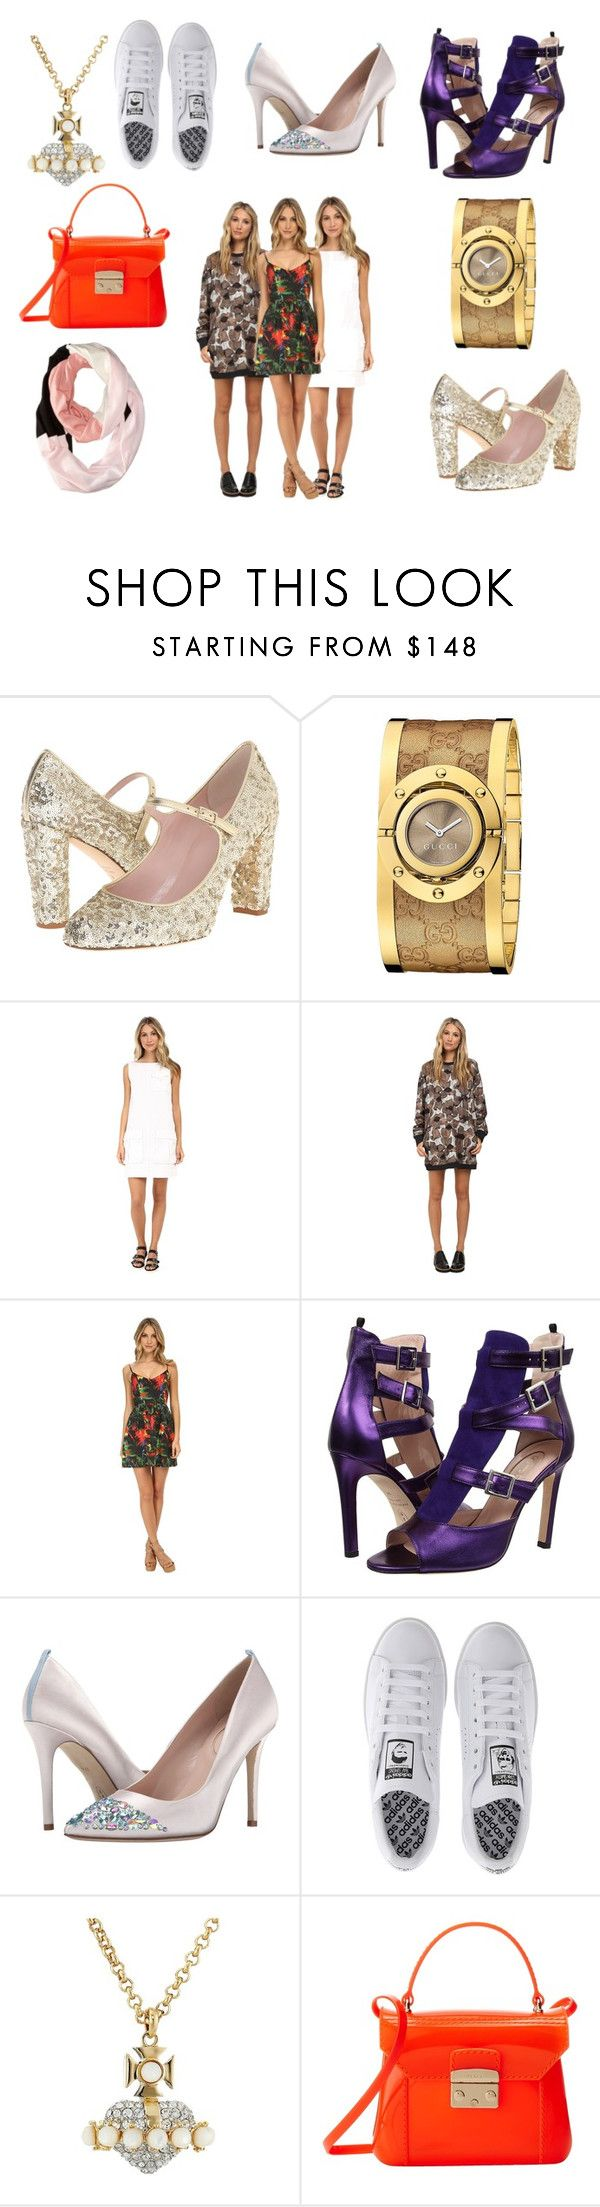 """""""Giftgasms With Zappos Couture!"""" by emma-esselmark on Polyvore featuring Kate Spade, Gucci, Marc by Marc Jacobs, Vera Wang, Love Moschino, SJP, adidas, Vivienne Westwood and Furla"""